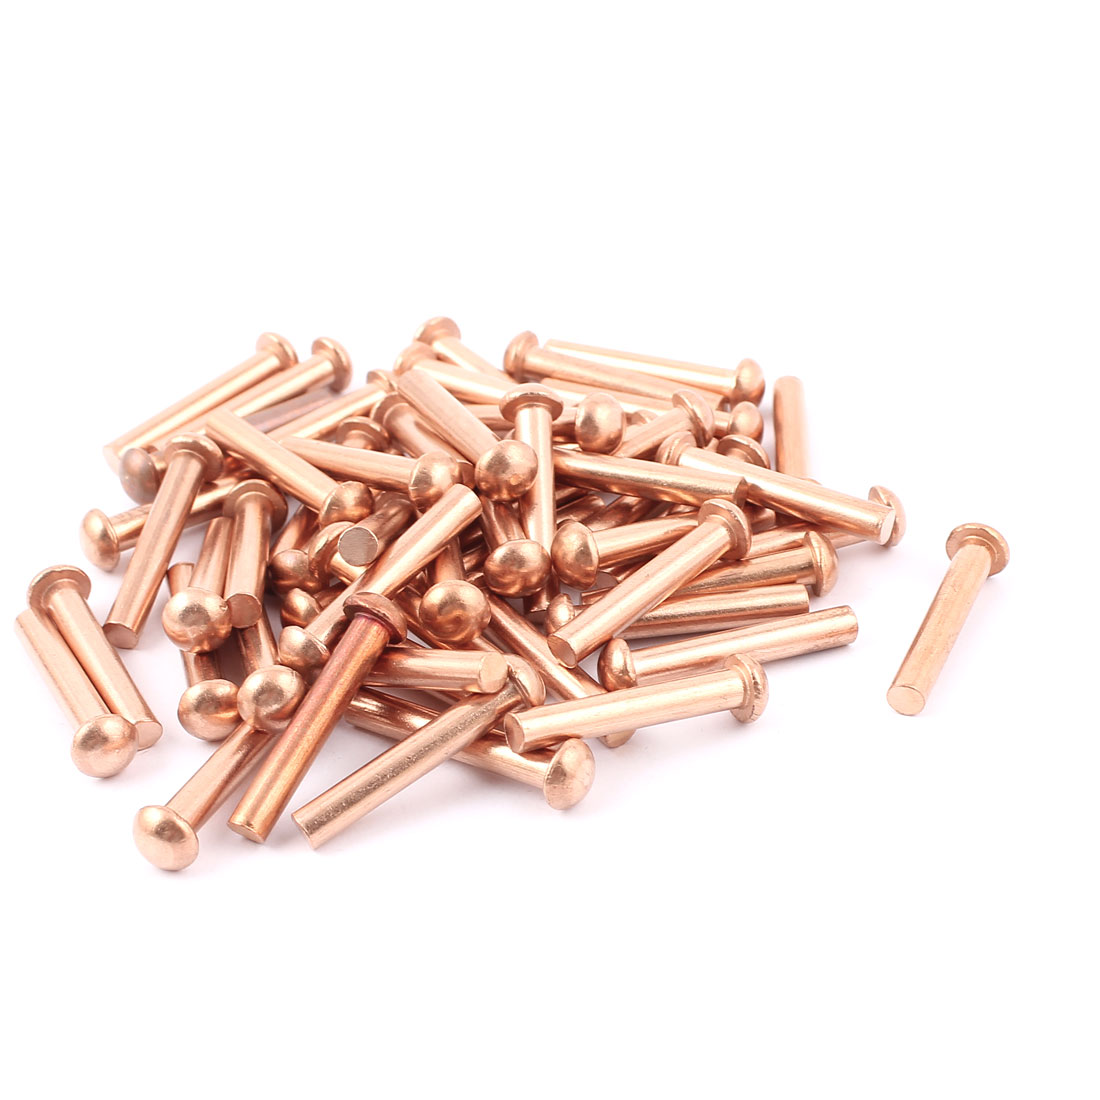 "50 Pcs 3/16"" Diameter 1 3/16"" L Shank Round Head Copper Solid Rivets Fasteners"